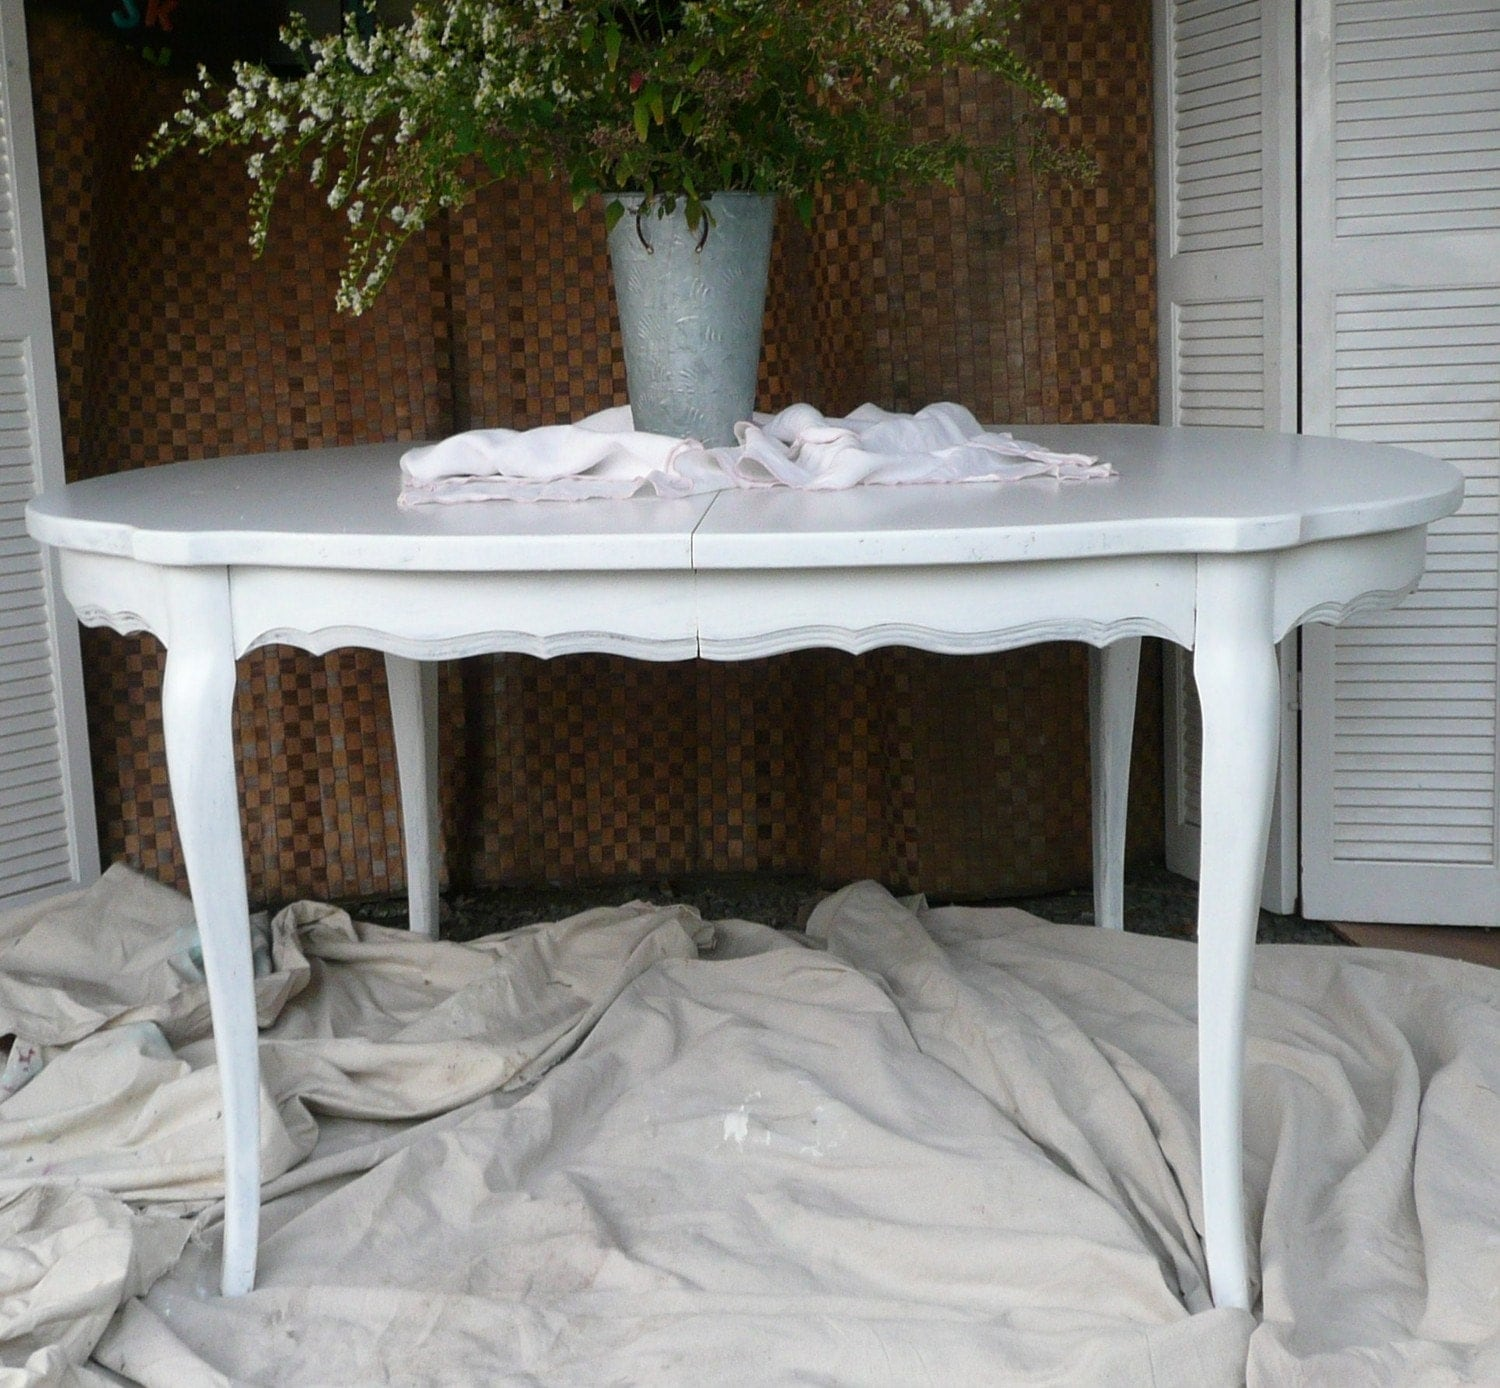 Vintage Painted Shabby Chic Dining Table in White painted : ilfullxfull184655199 from www.etsy.com size 1500 x 1388 jpeg 388kB